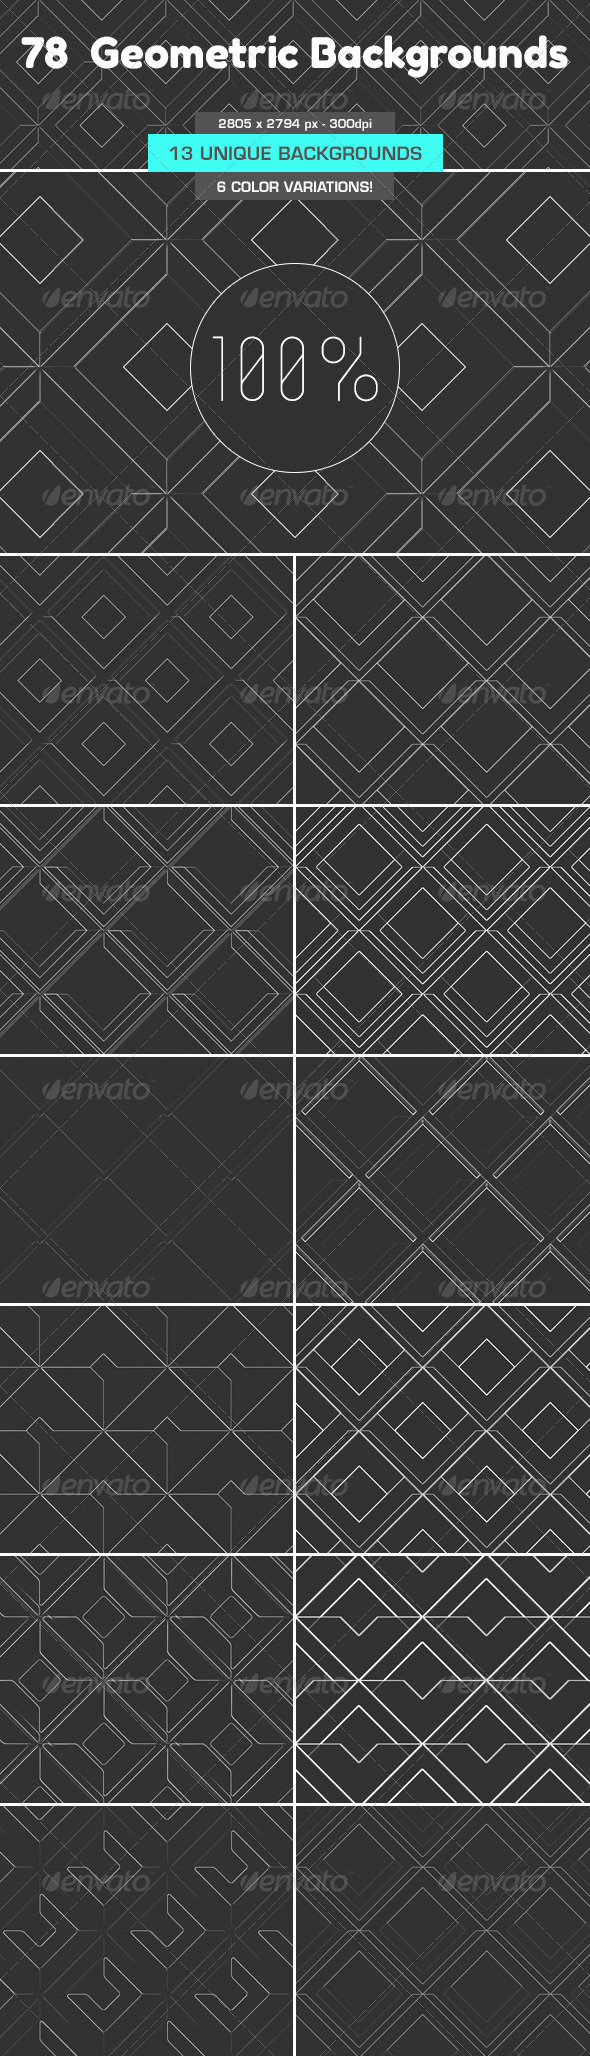 GraphicRiver 78 Geometric Backgrounds 5214142